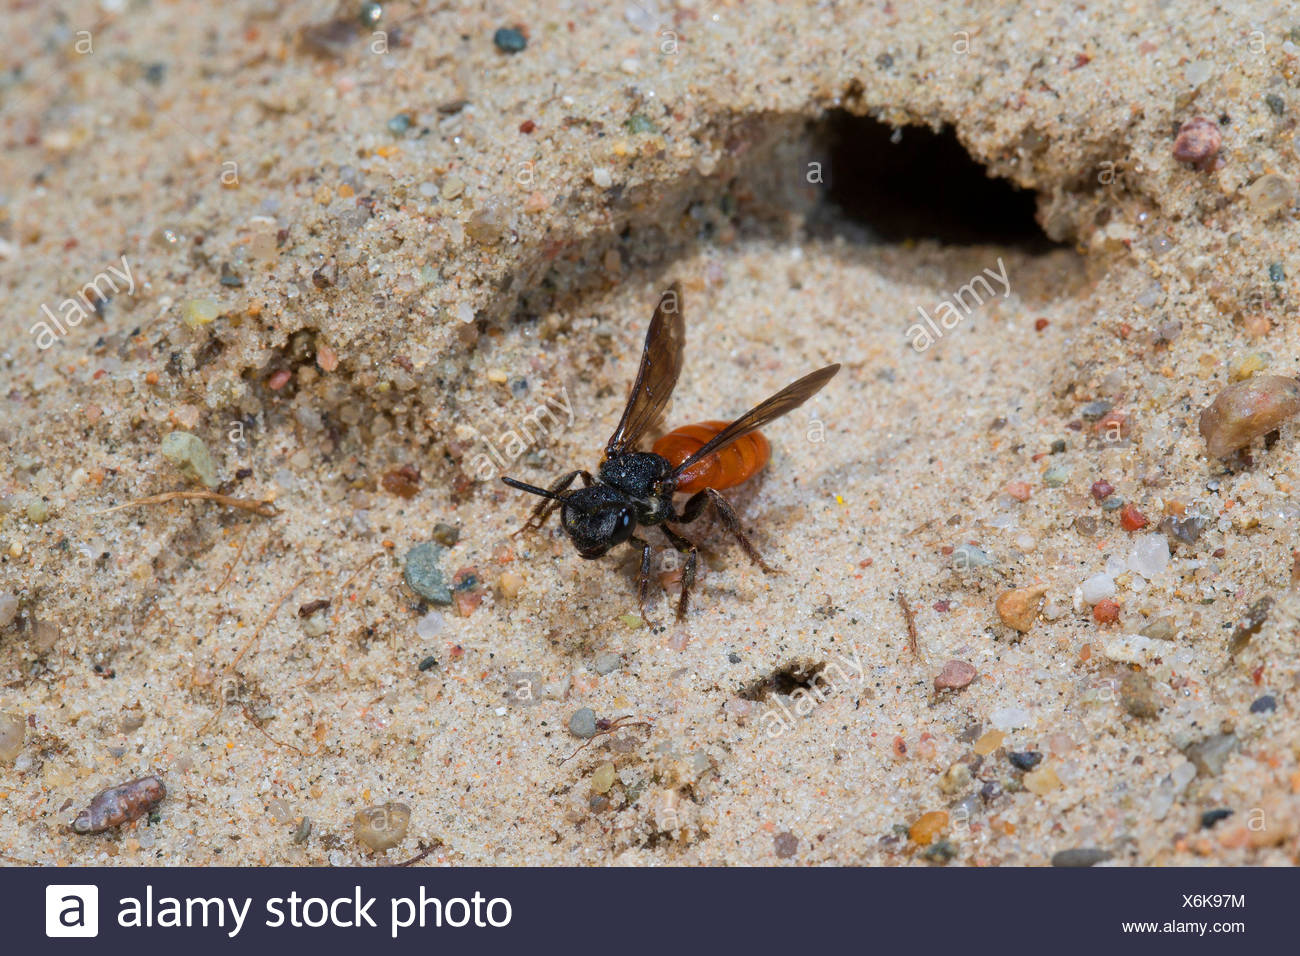 Sweat bee, Halictid Bee (Sphecodes albilabris, Sphecodes fuscipennis), taking off from its burrow, Germany - Stock Image